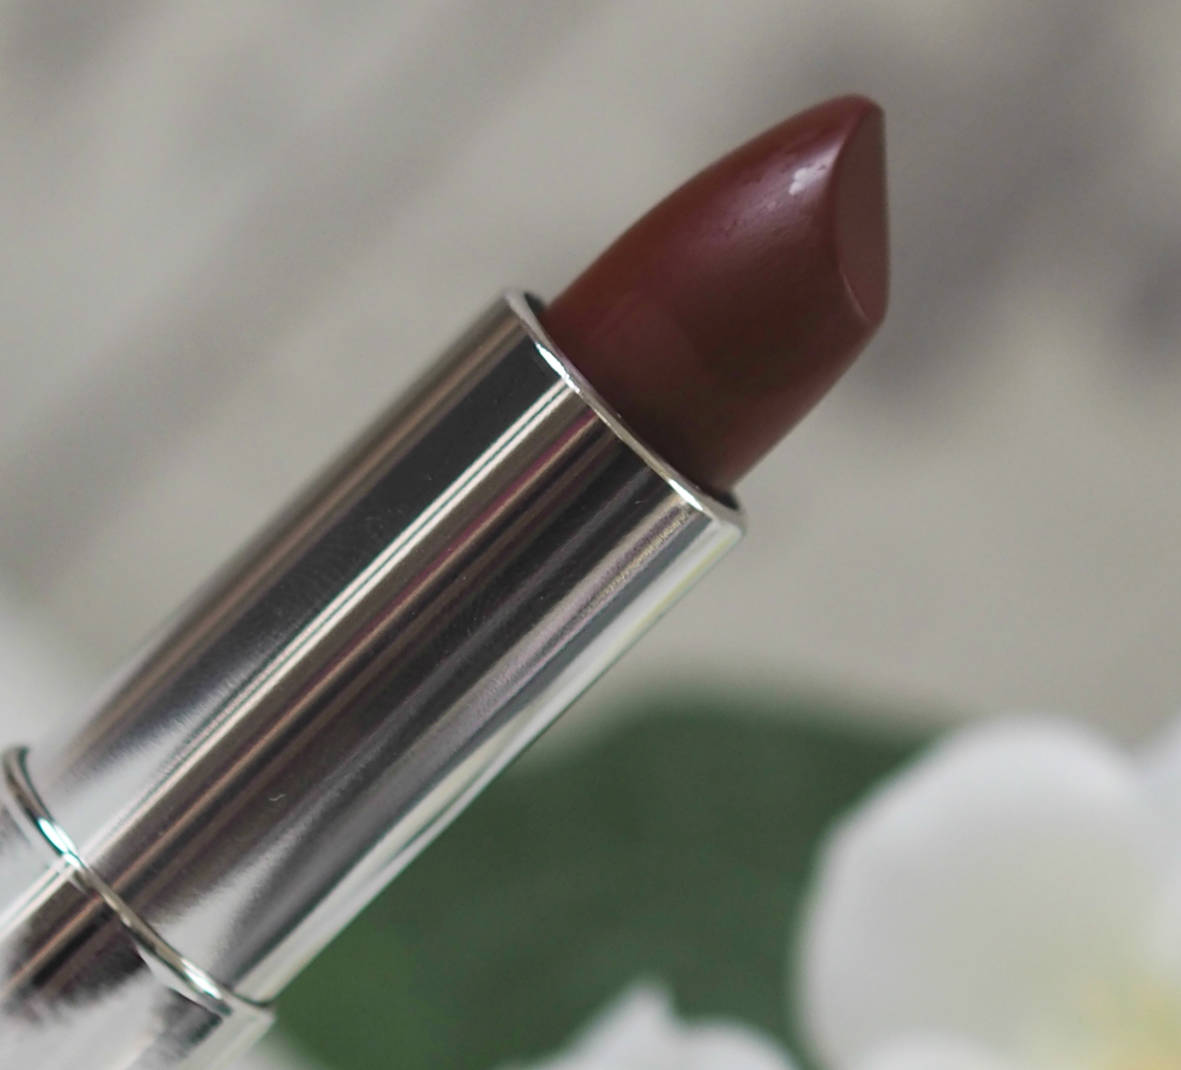 Maybelline Color Sensational Creamy Mattes Review In